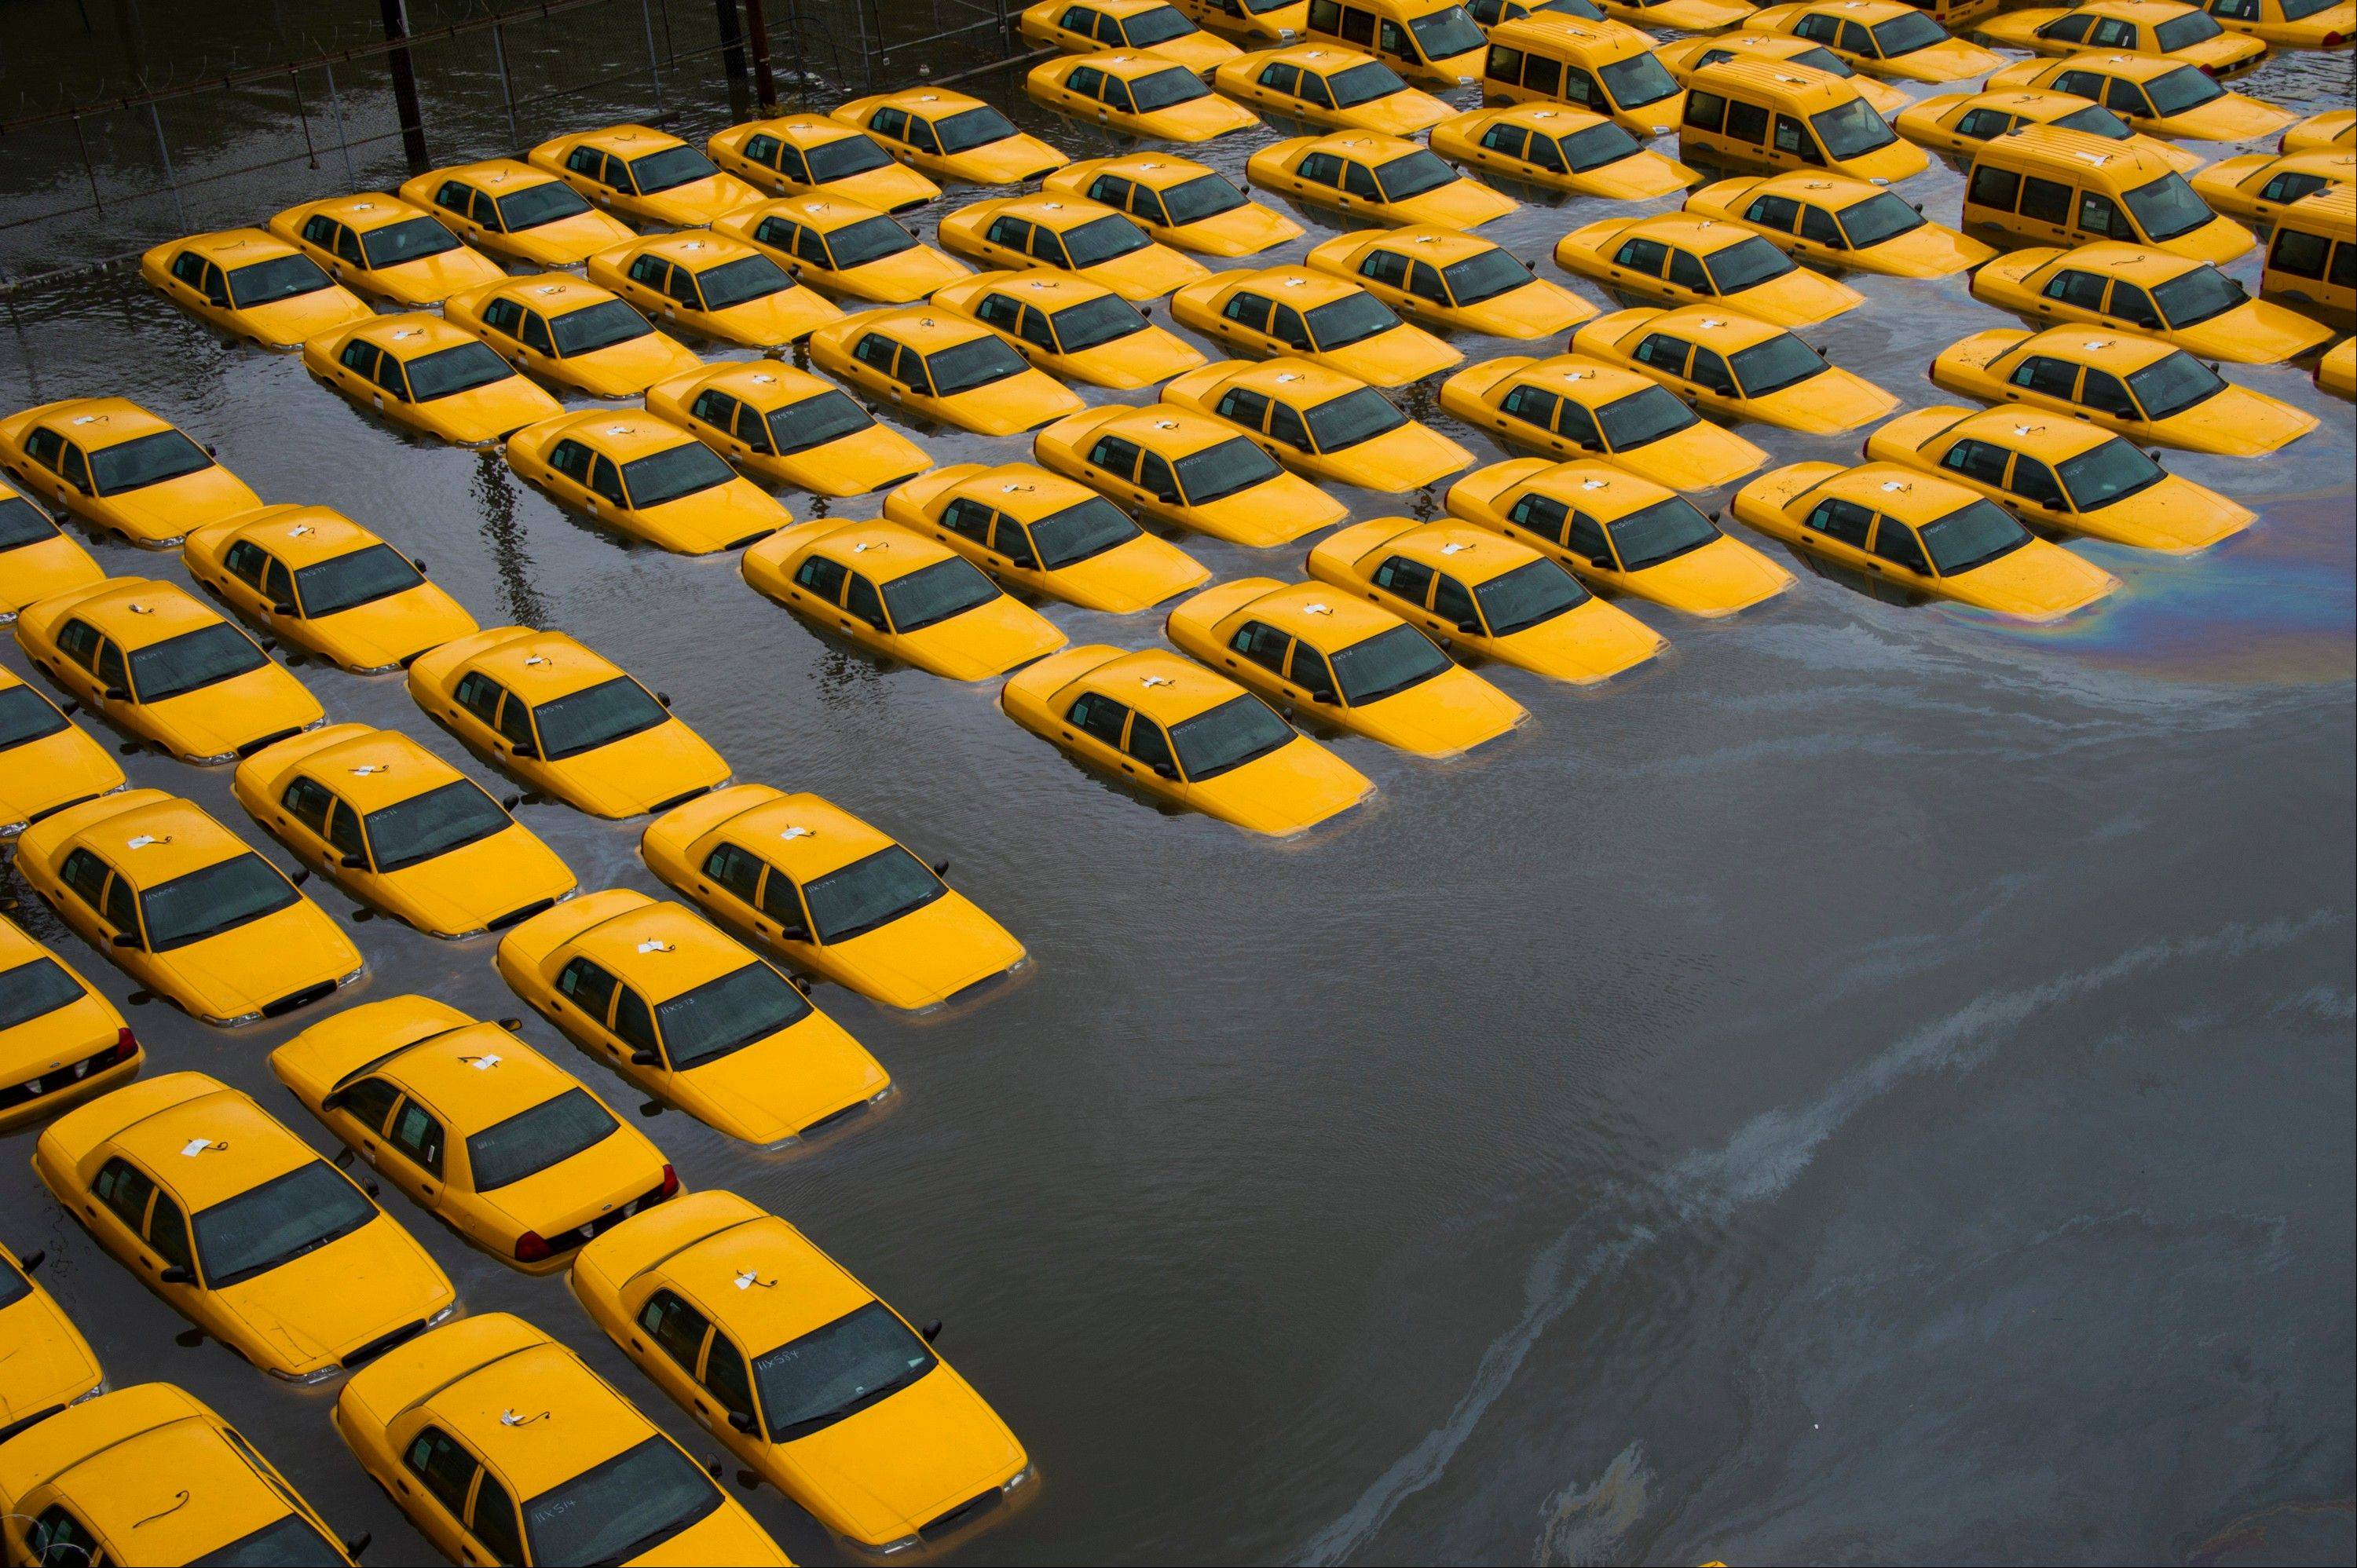 In this Oct. 30 file photo, a parking lot full of yellow cabs is flooded as a result of Superstorm Sandy in Hoboken, N.J. Sandy damaged or destroyed several homes and businesses, more than 72,000 in New Jersey alone, according to Gov. Chris Christie.